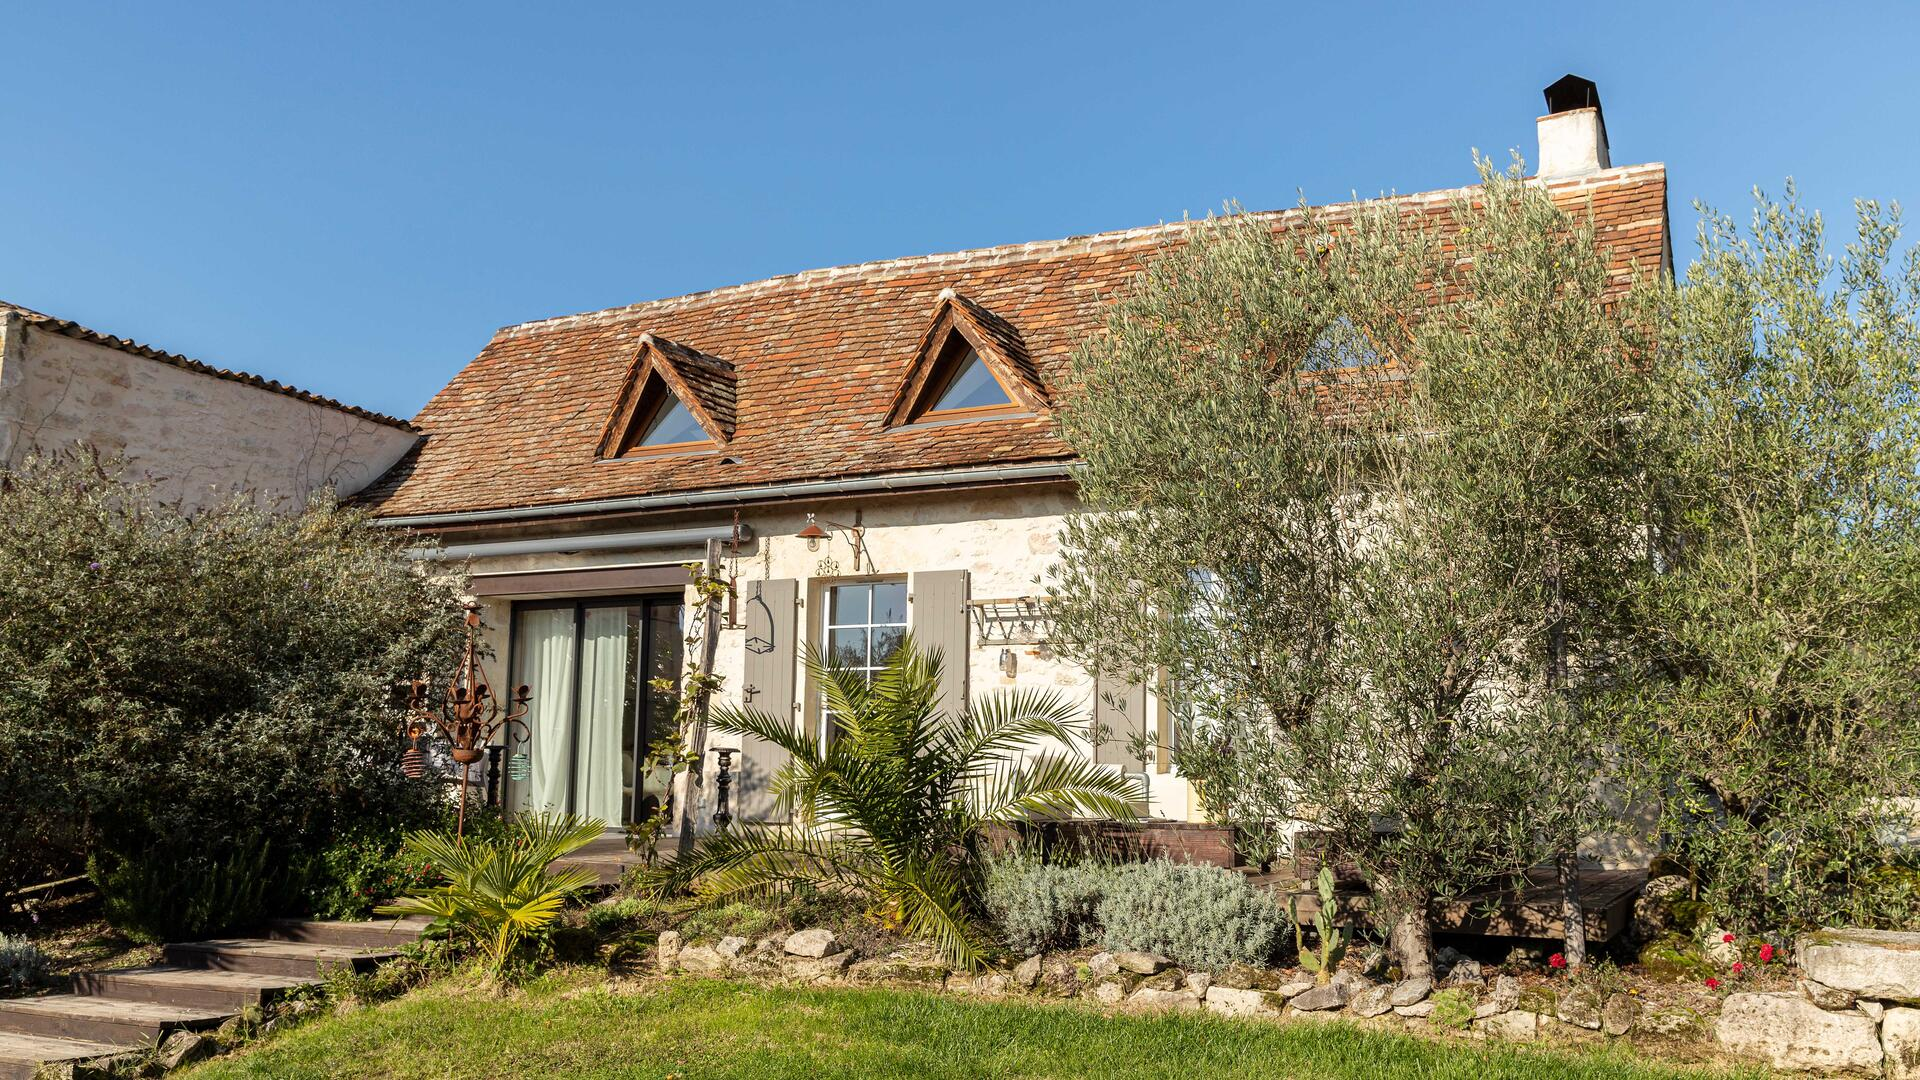 Private child-friendly holiday home in Dordgone, France